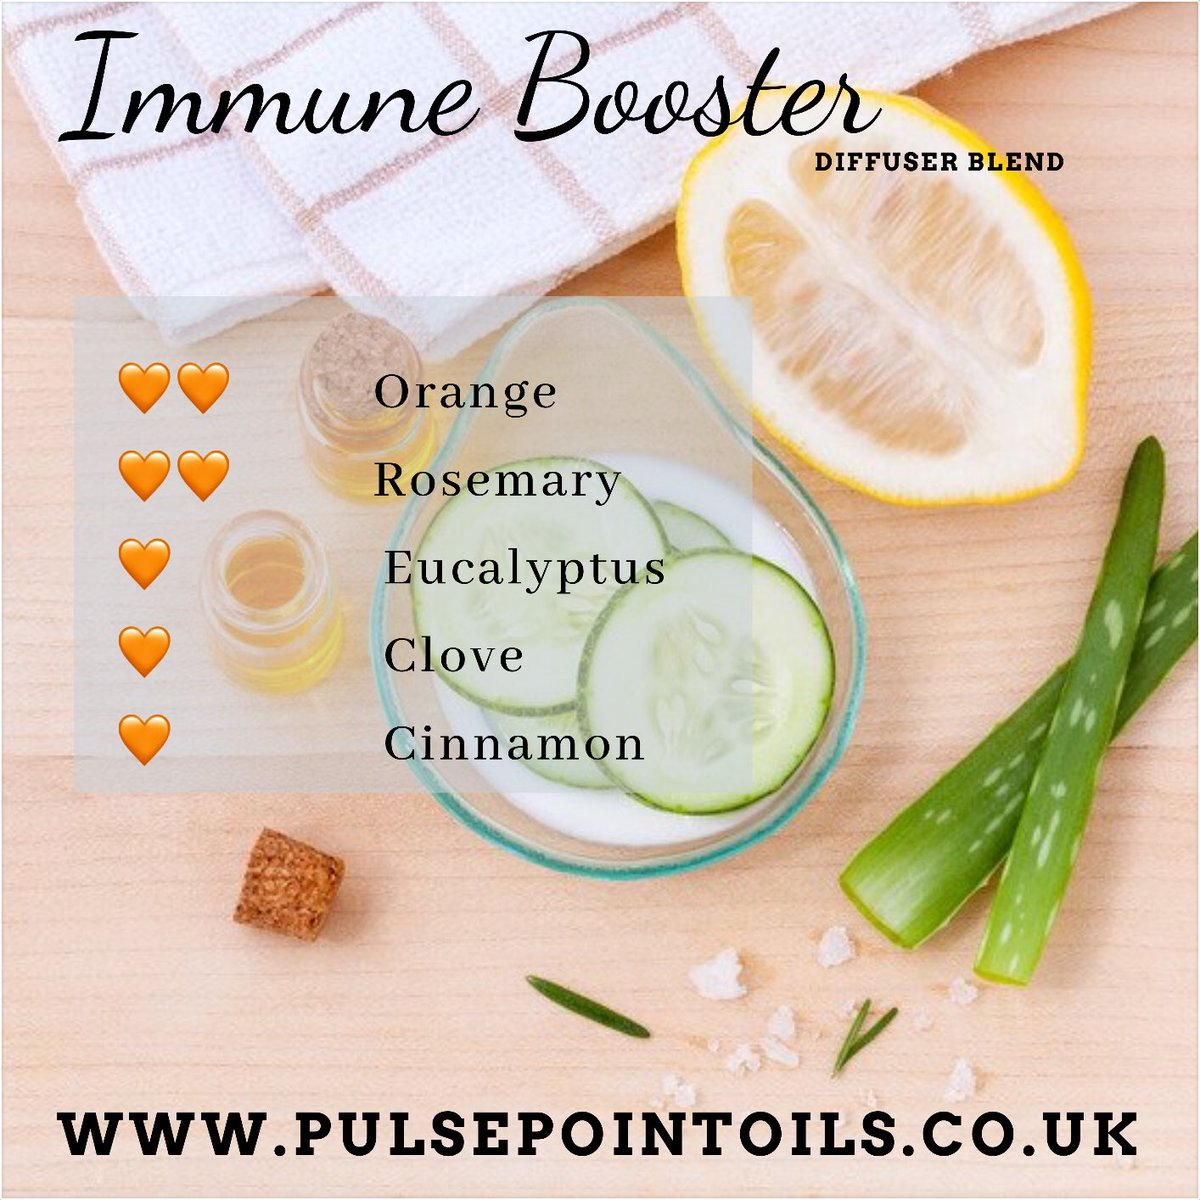 Diffuser Essential oil blend to boost your immune system http://www.pulsepointoils.co.uk  #essentialoilswork #immunesupport #immunesystem #immunebooster #immunityboost #homescent #diffuserblend #fragranceyourhome #essentialoilblend #diyideas #selflove #selfcare #pulsepointoilspic.twitter.com/UvLGWTFh0I